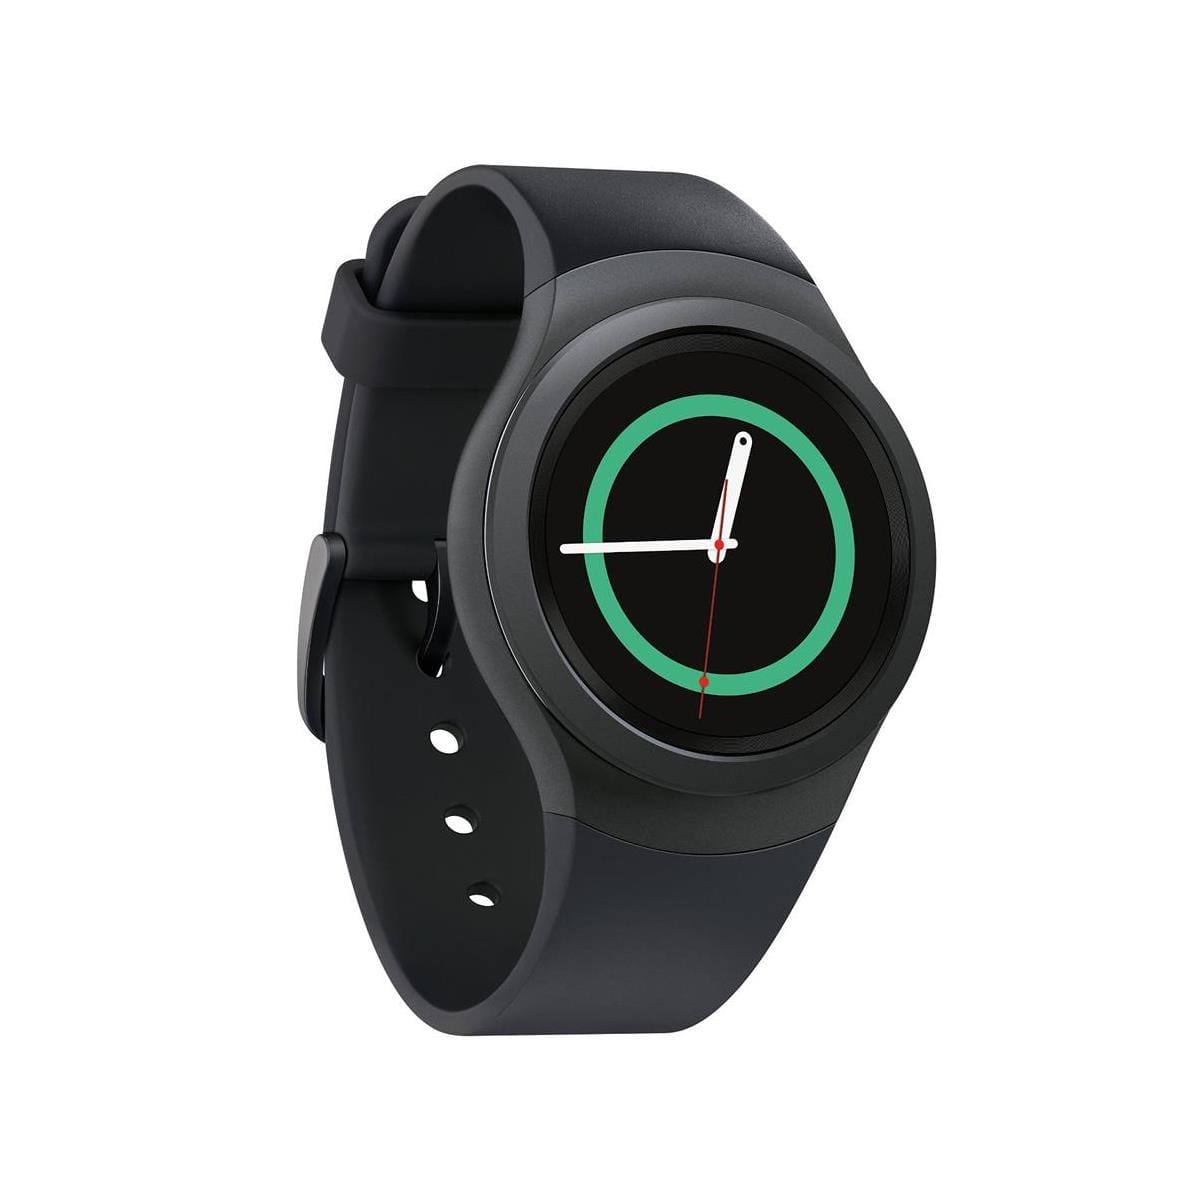 Samsung Gear S2 Smartwatch (Black or White) $199 after $50 Rebate + Free Shipping